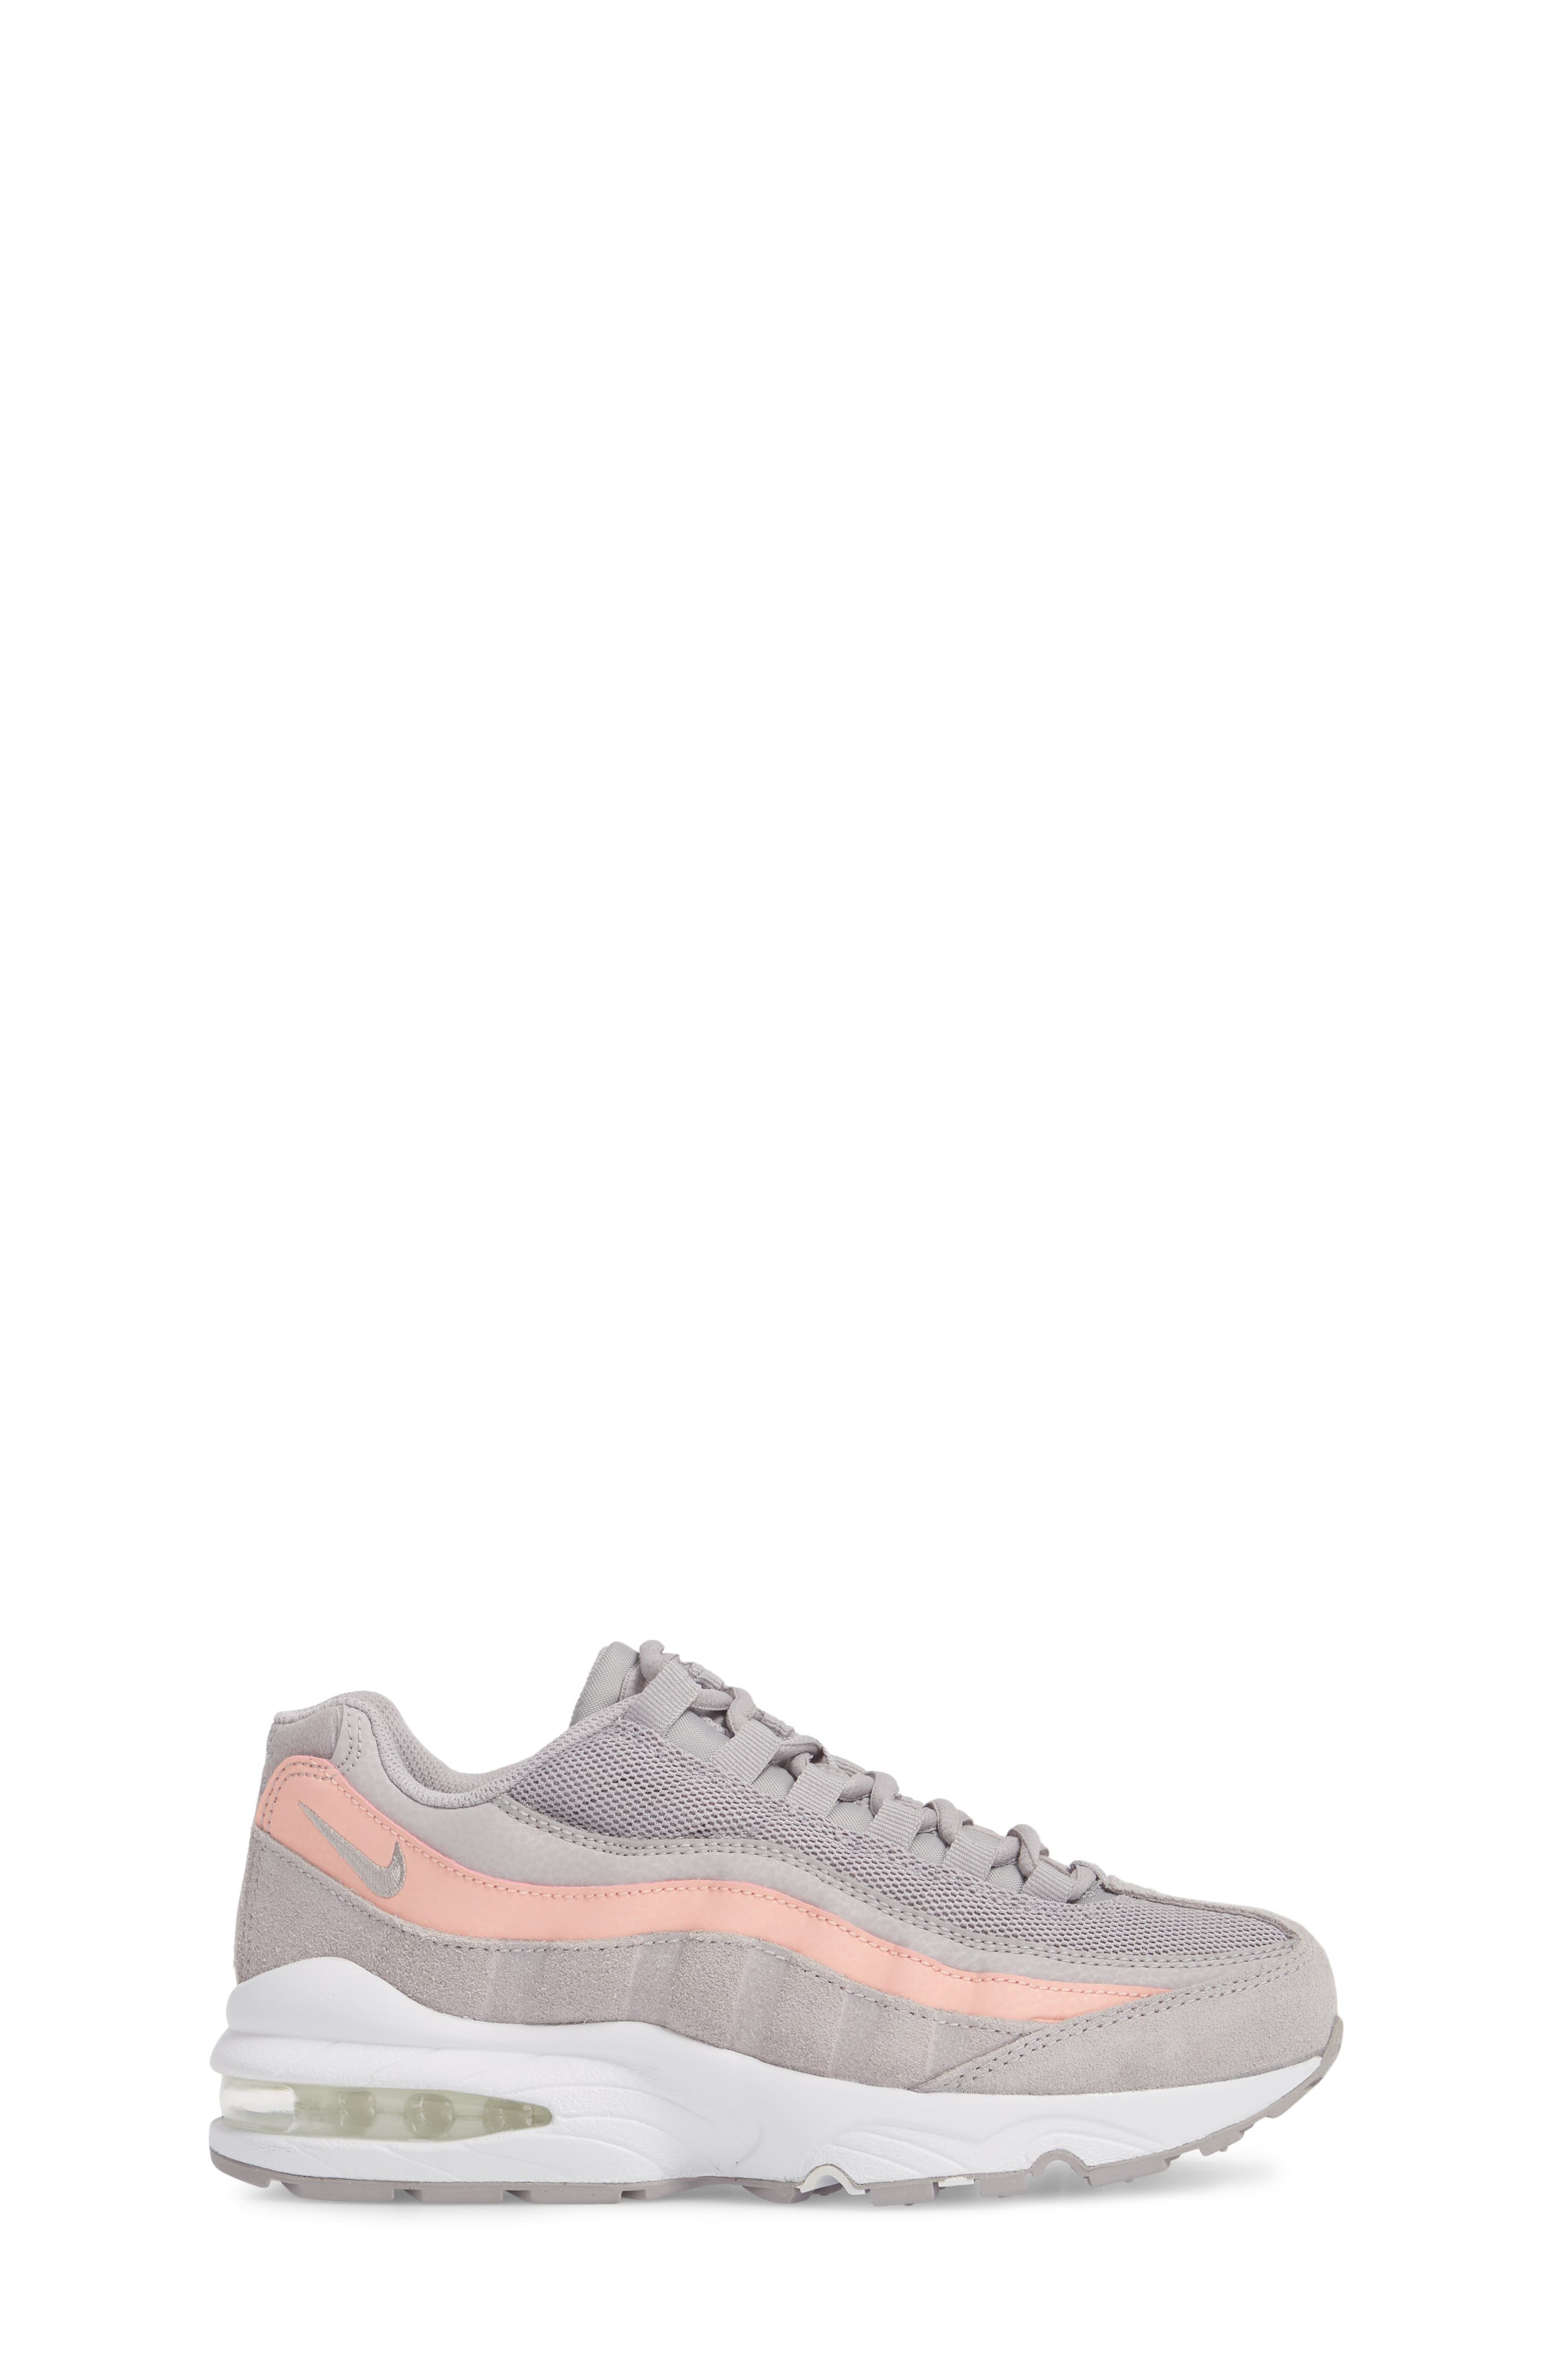 Air Max '95 LE Sneaker,                             Alternate thumbnail 3, color,                             Atmosphere Grey